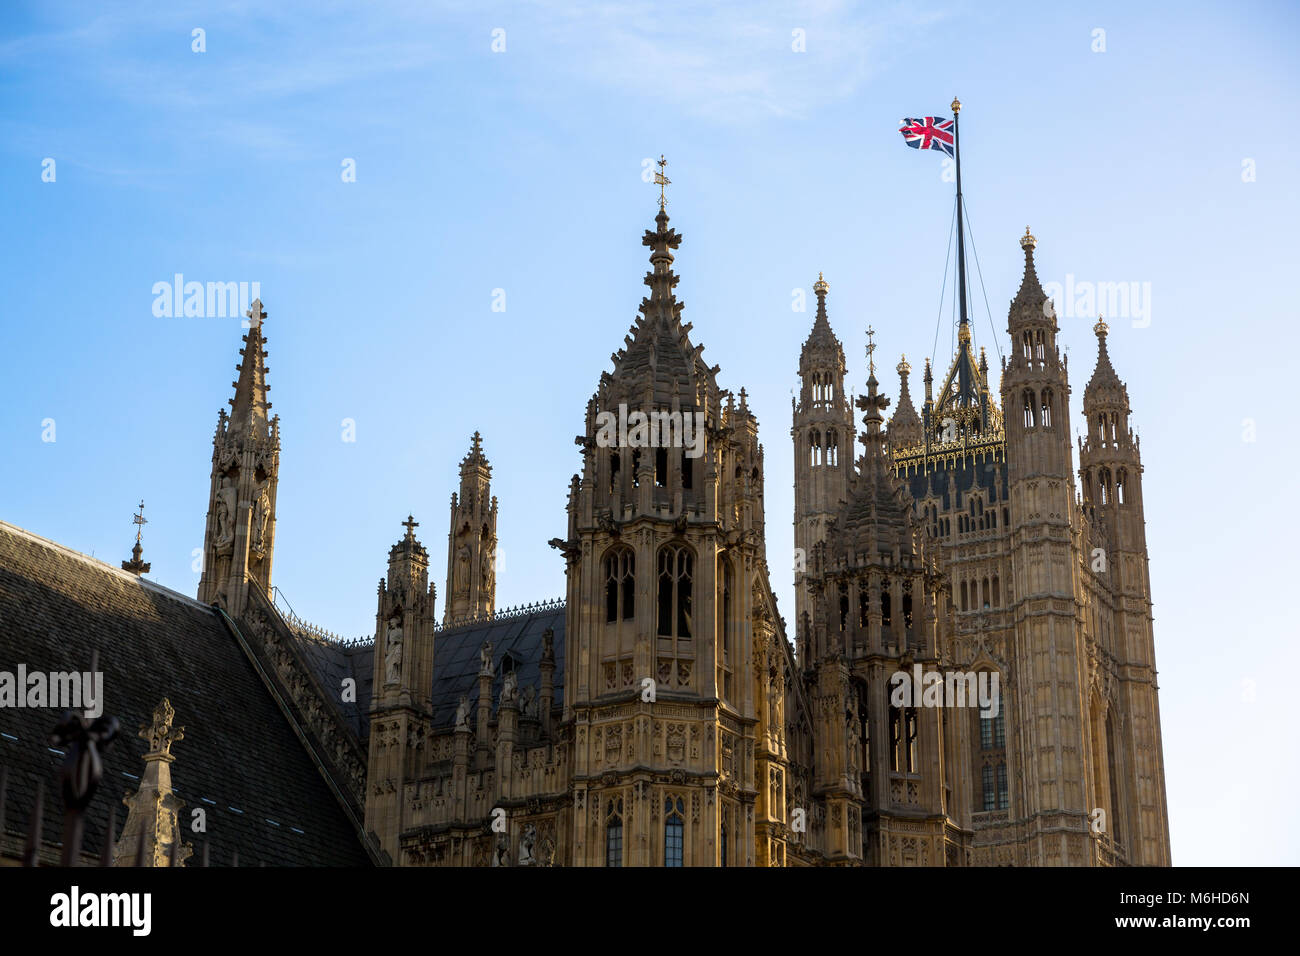 Architectural detail of Palace of Westminster - London, England - UK - Stock Image